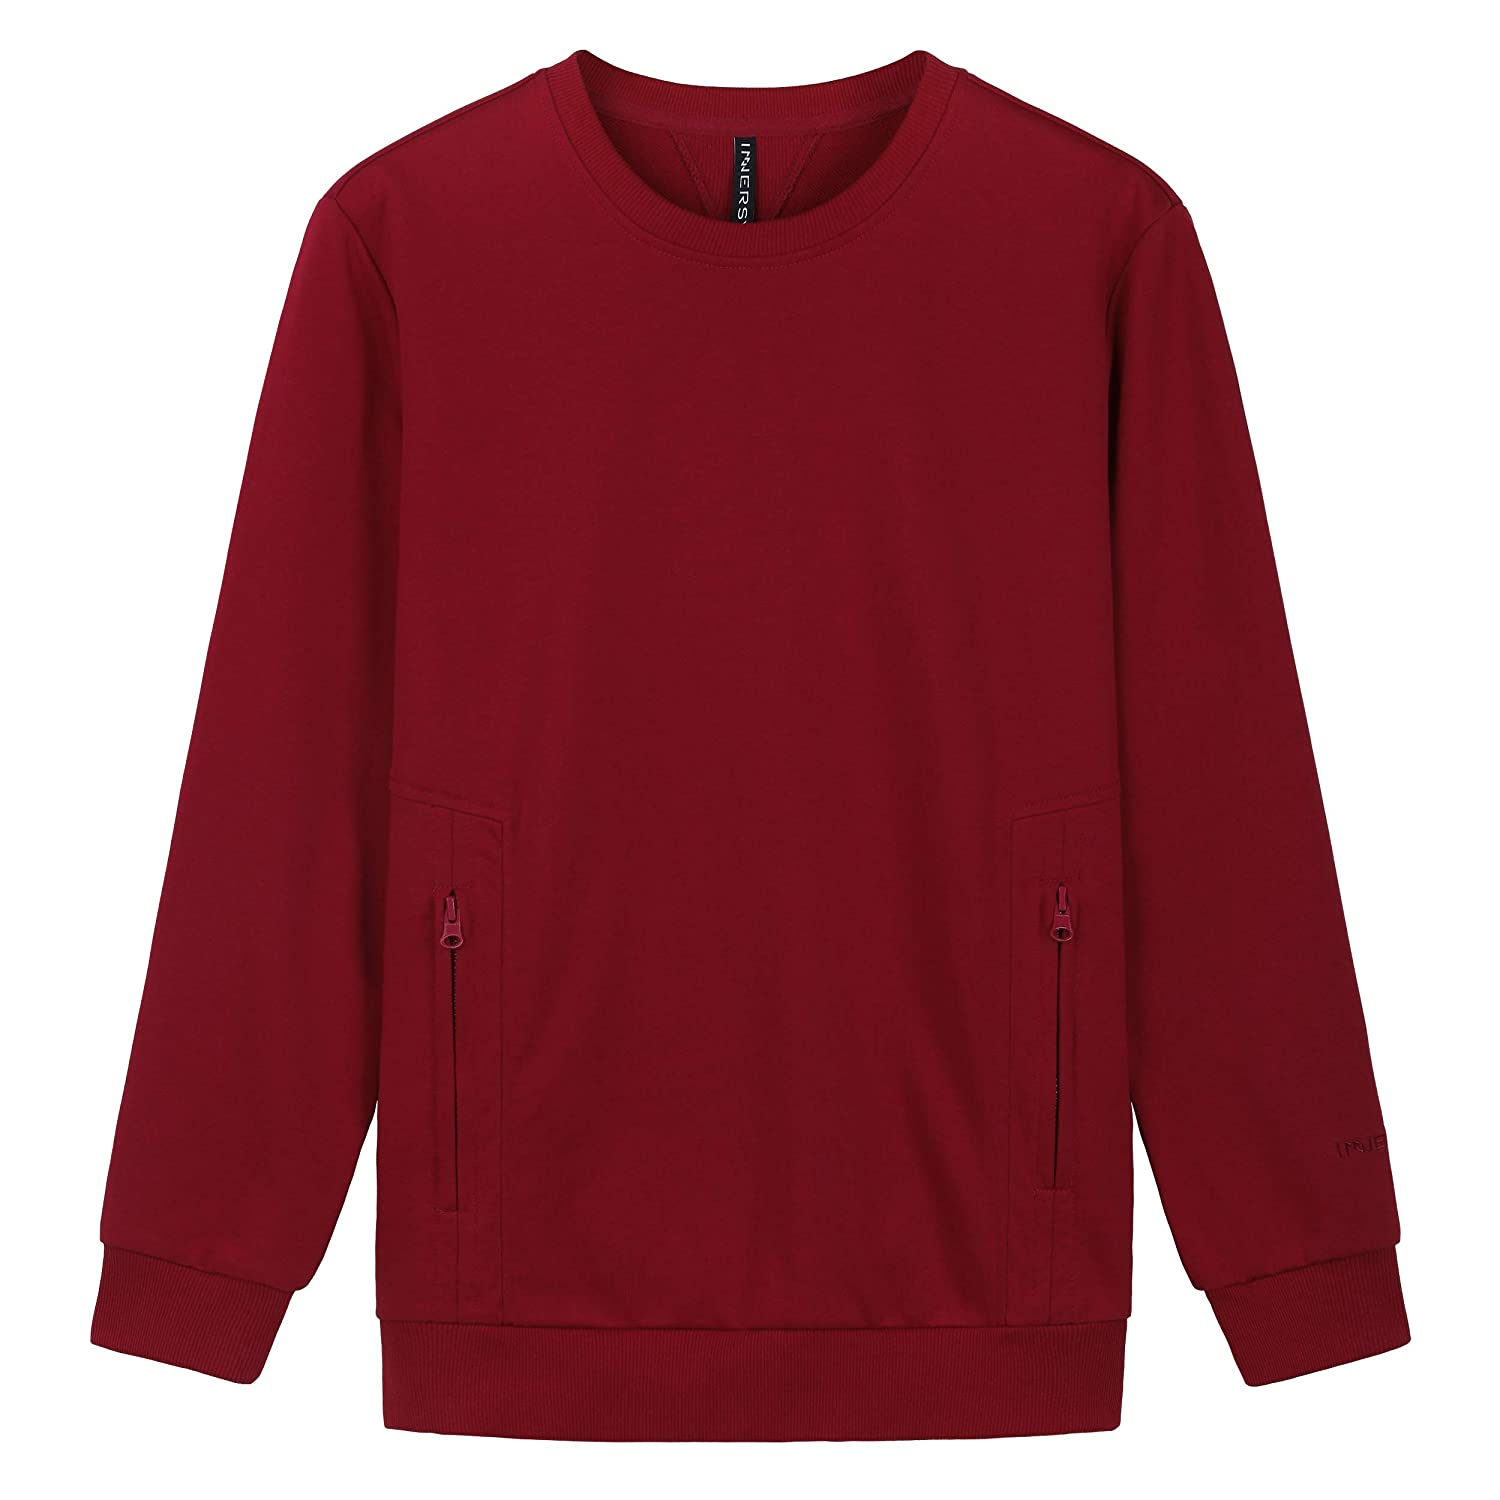 INNERSY Men's French Terry Cotton Crewneck Sweatshirt Pull-Over with Pockets